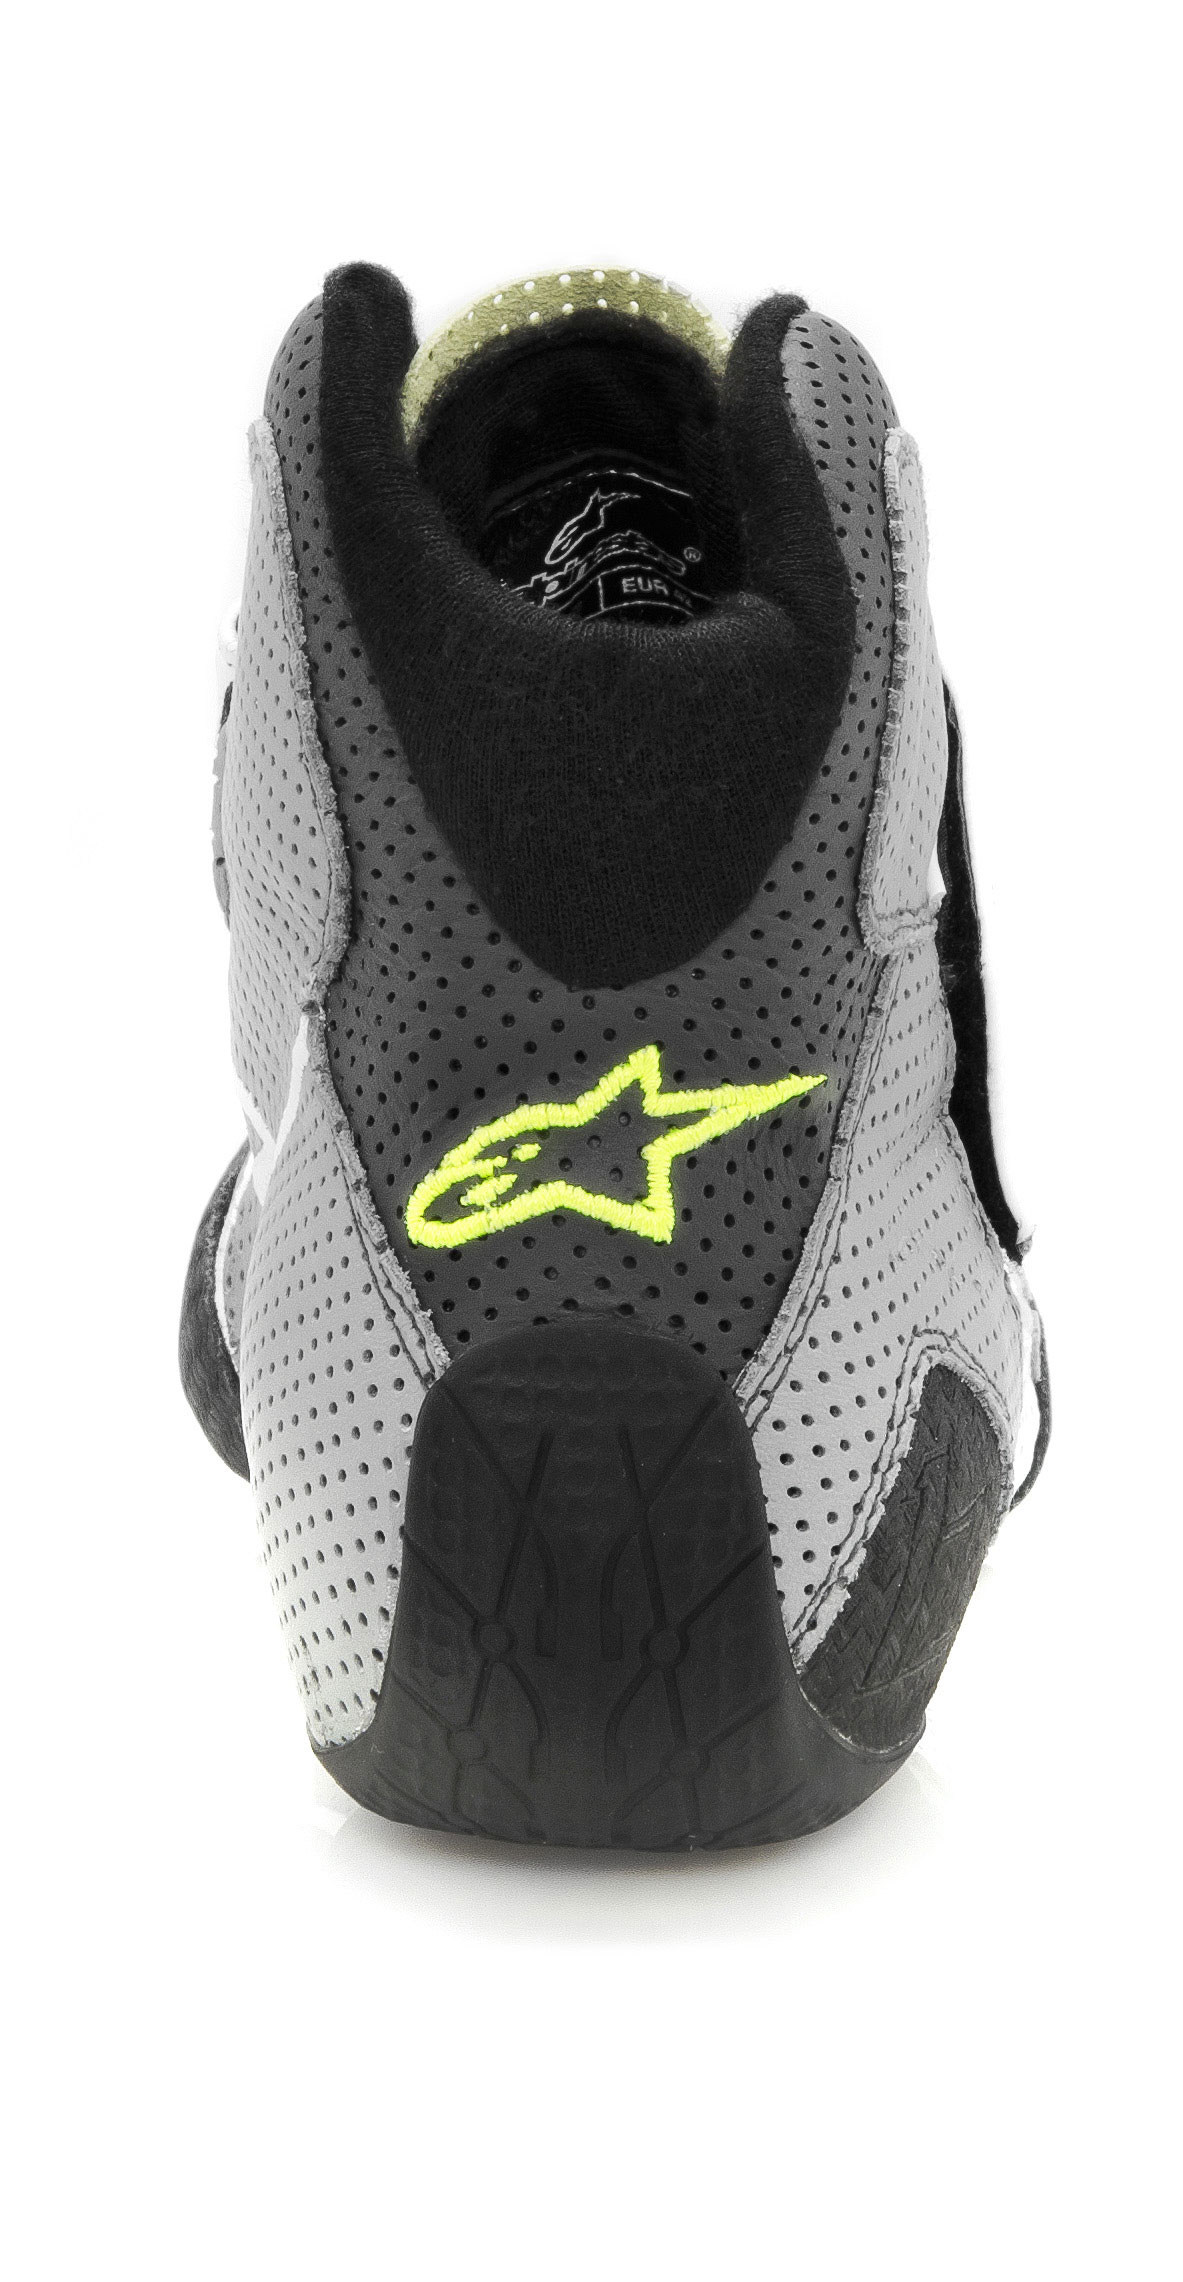 tech-1-z-gray-yellow-fluo-rot4